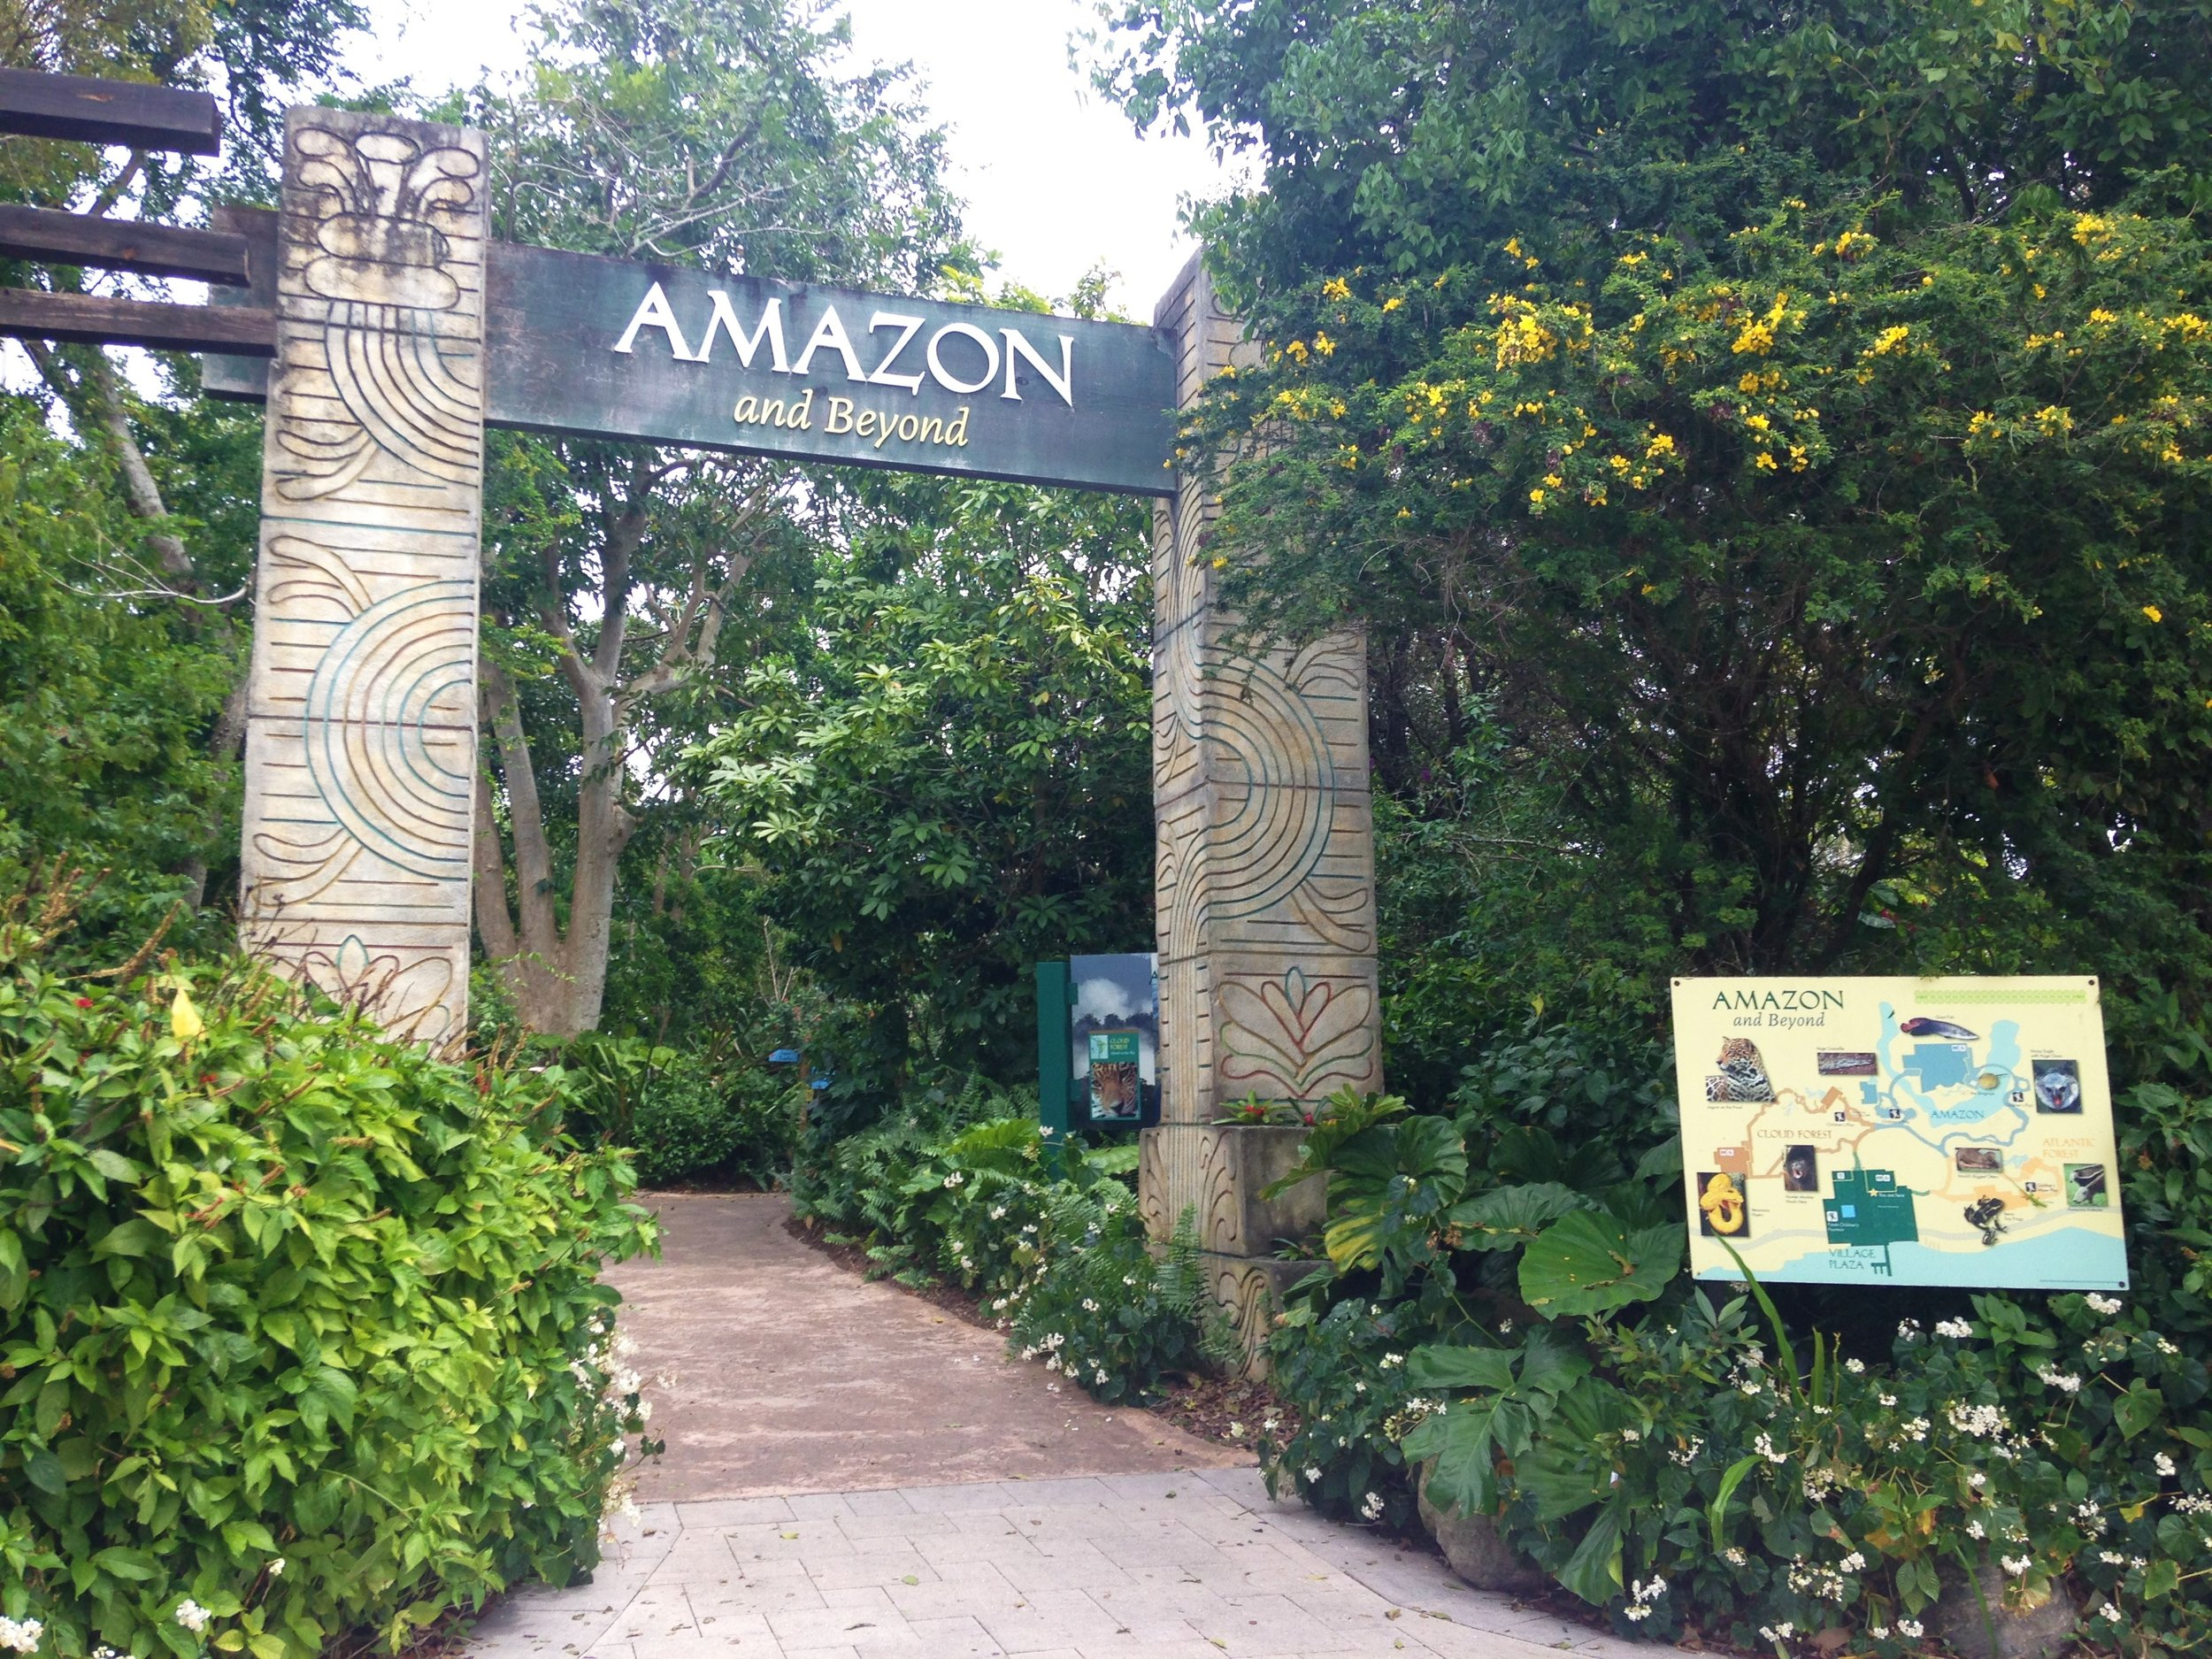 1. Zoo Miami - Zoo Miami's Amazon and Beyond exhibit was done by Jones and Jones. This exhibit allows you to experience some of the world's most diverse ecosystem such as the tropical American rainforest, Amazonia region and more! Take a look at this link for some amazing photos and other wildlife conservation projects Jones and Jones have worked on.https://www.jonesandjones.com/work/wildlife.html